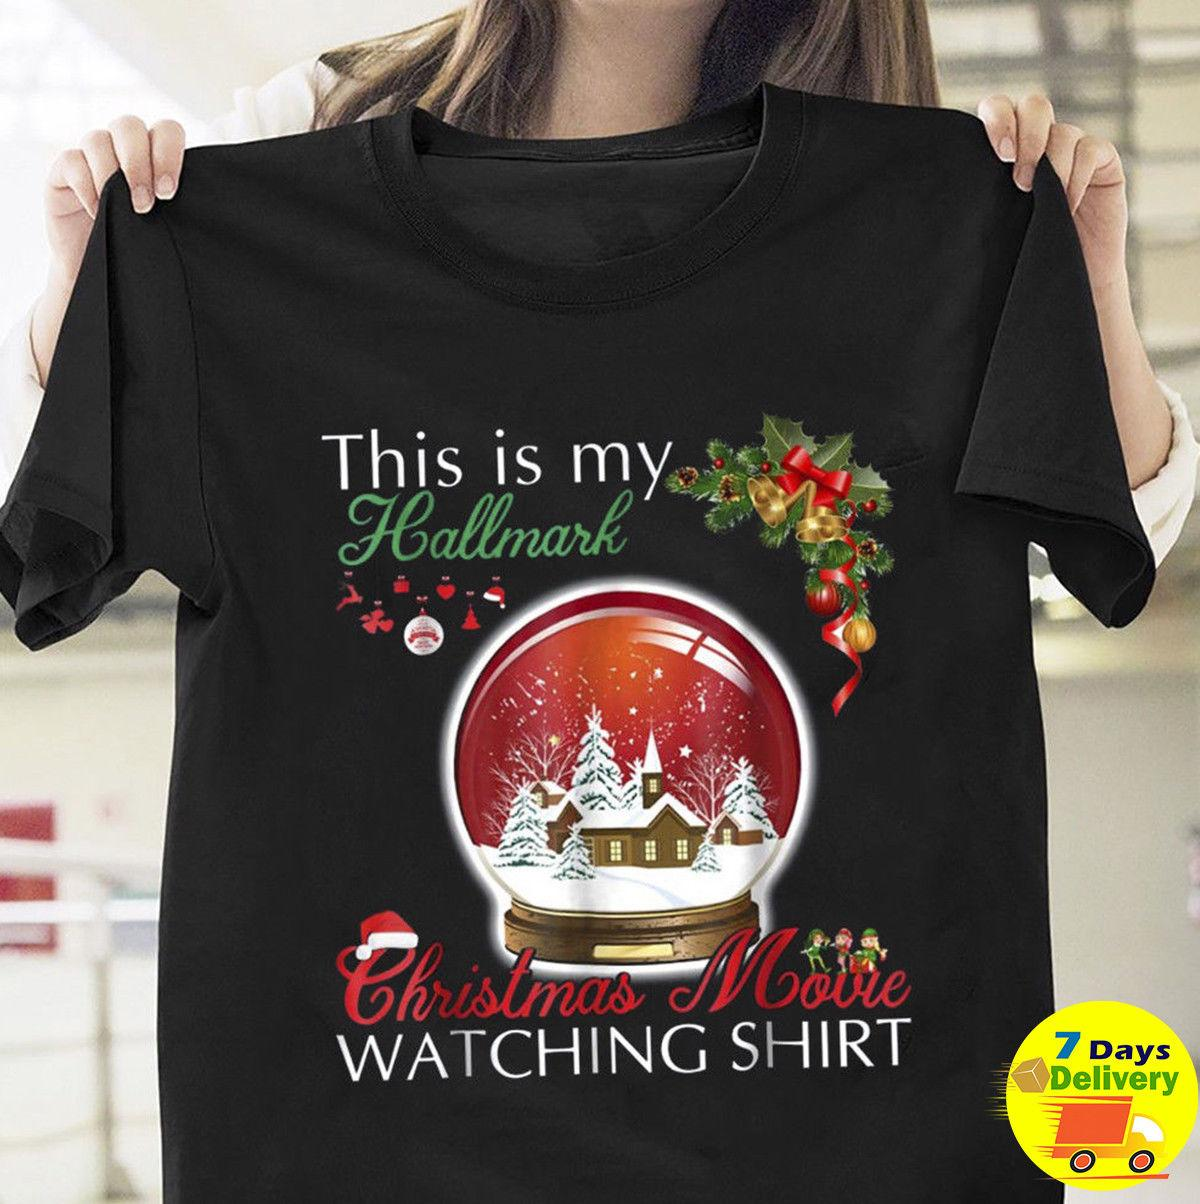 d018fed2b789 This Is My Hallmark Christmas Movie Watching Shirt Black Men T Shirt Xmas S  3XL Funny Unisex Casual Tshirt Top Quirky T Shirt Designs Purchase T Shirt  From ...